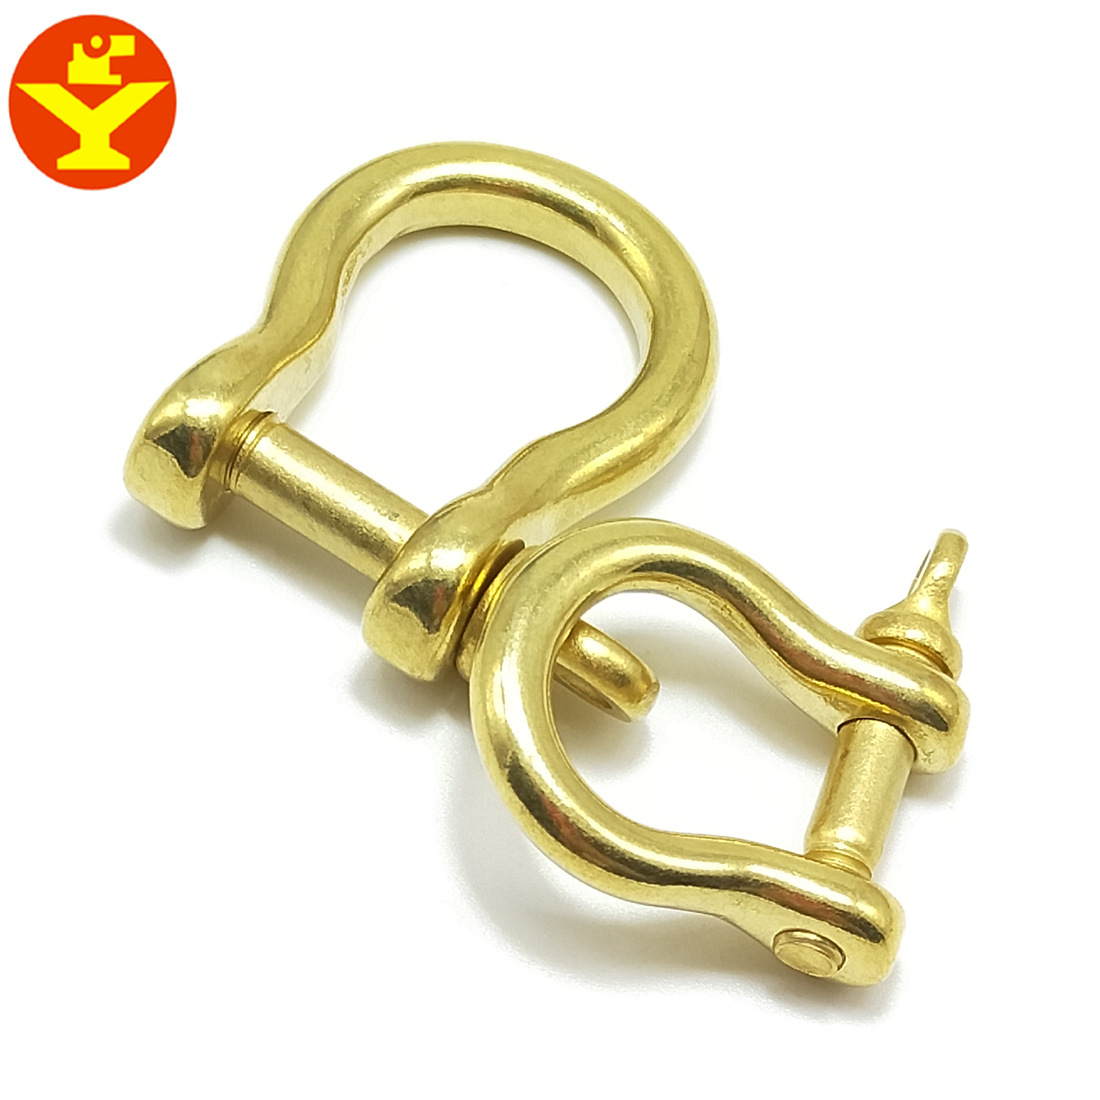 Wholesale U-shaped Buckle Brass Horseshoe Buckle Keychain DIY Genuine Leather Accessories Fine Copper Fiscal Cloth Bag With Hang